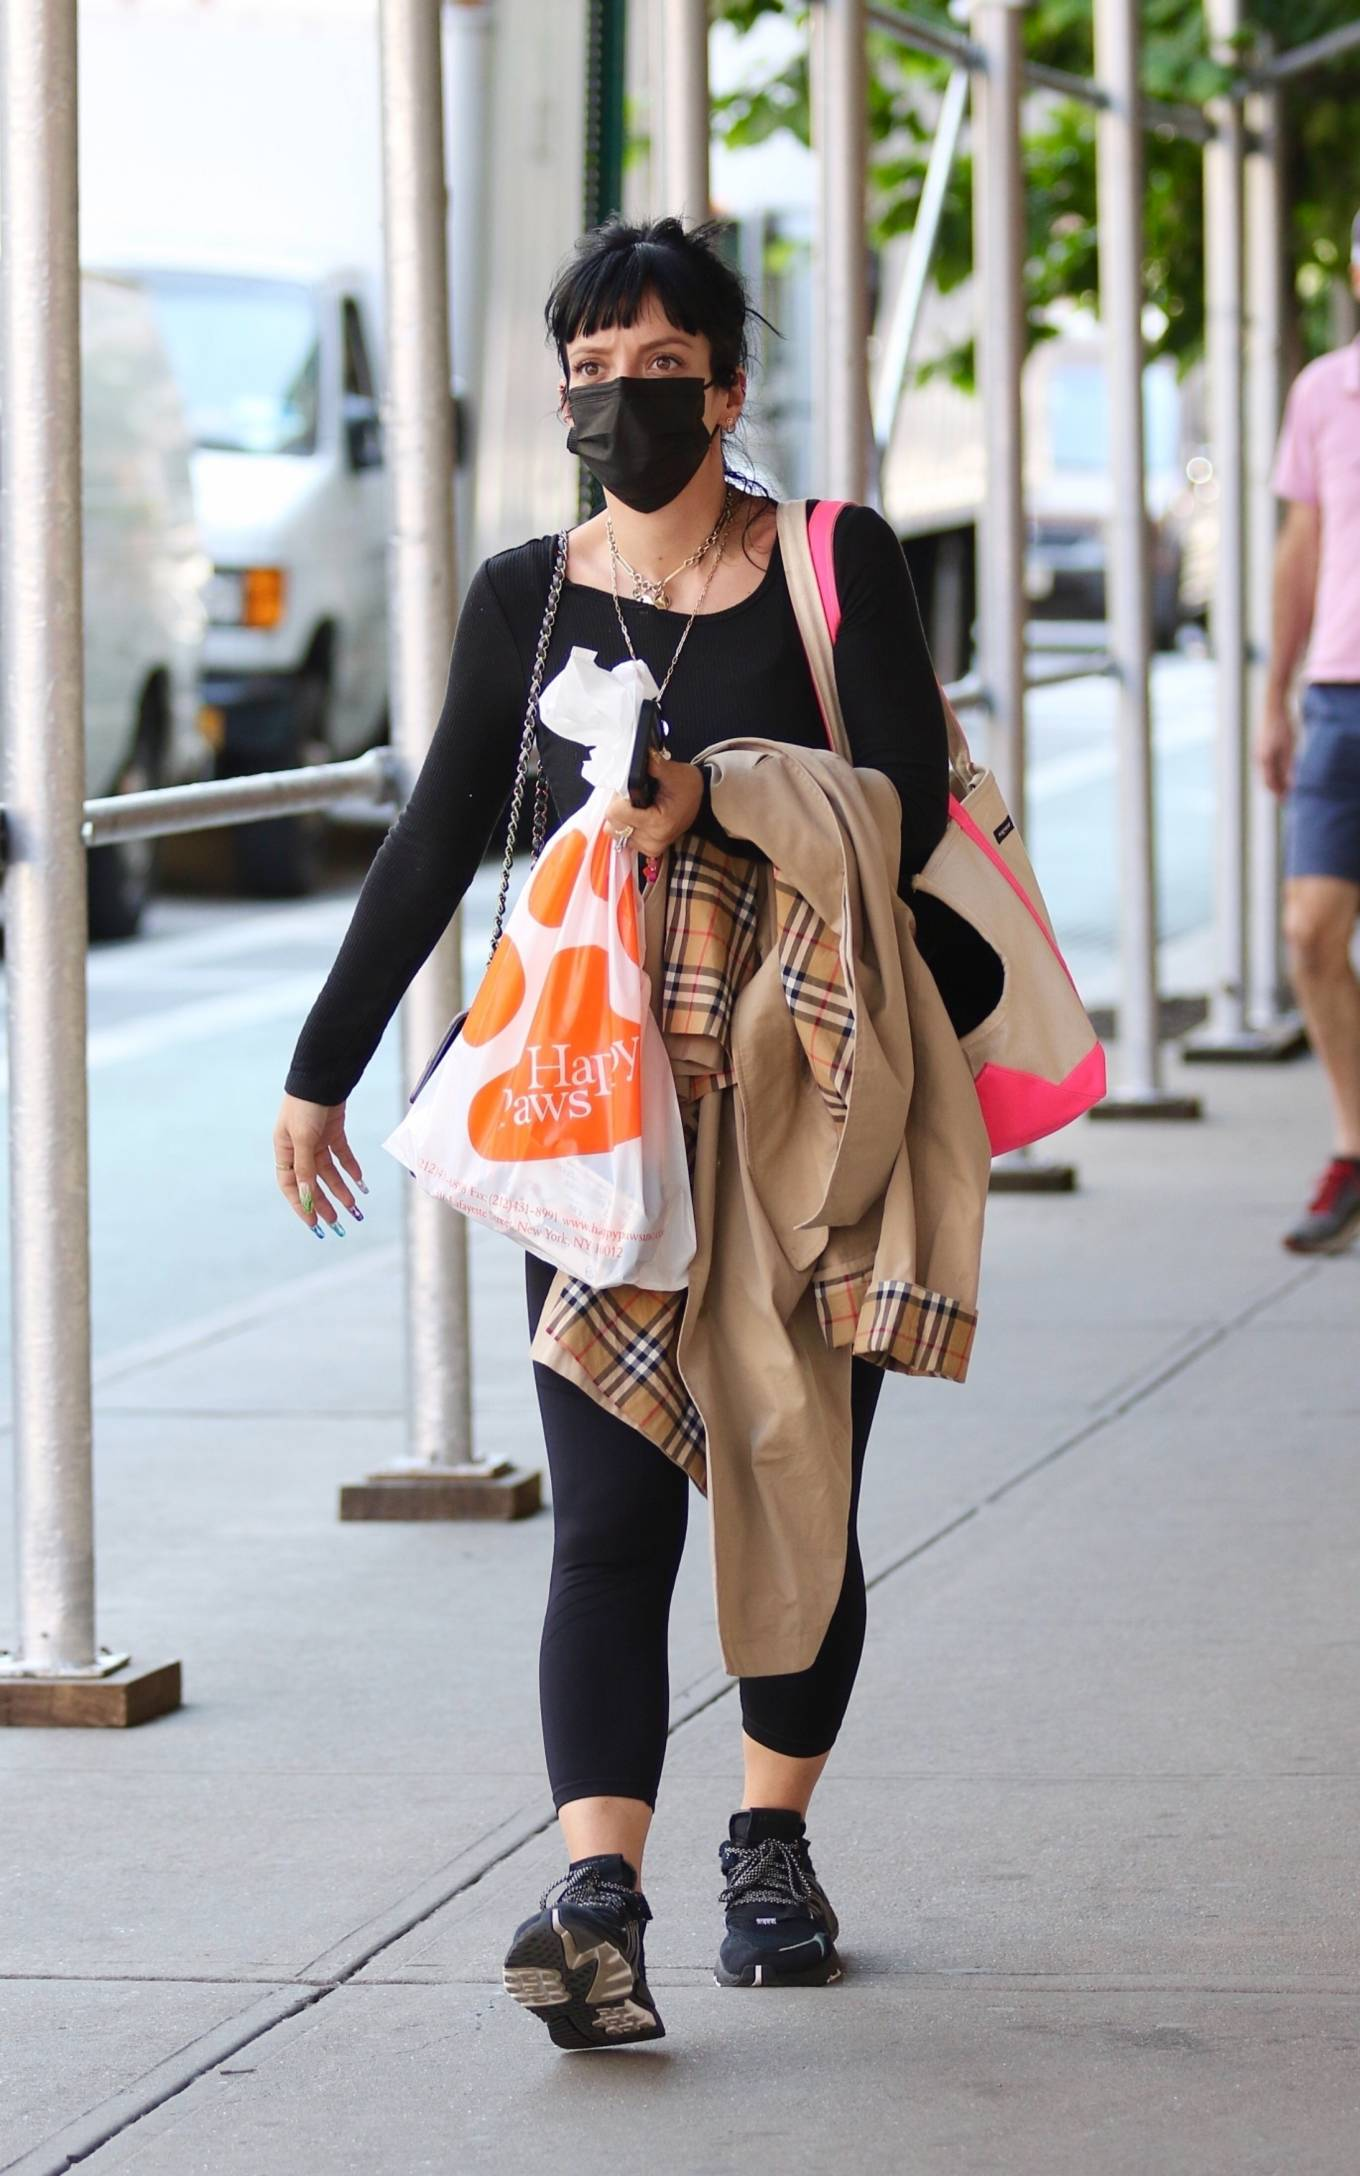 Lily Allen 2021 : Lily Allen – Shopping at Happy Paws pet store in Downtown Manhattan-04